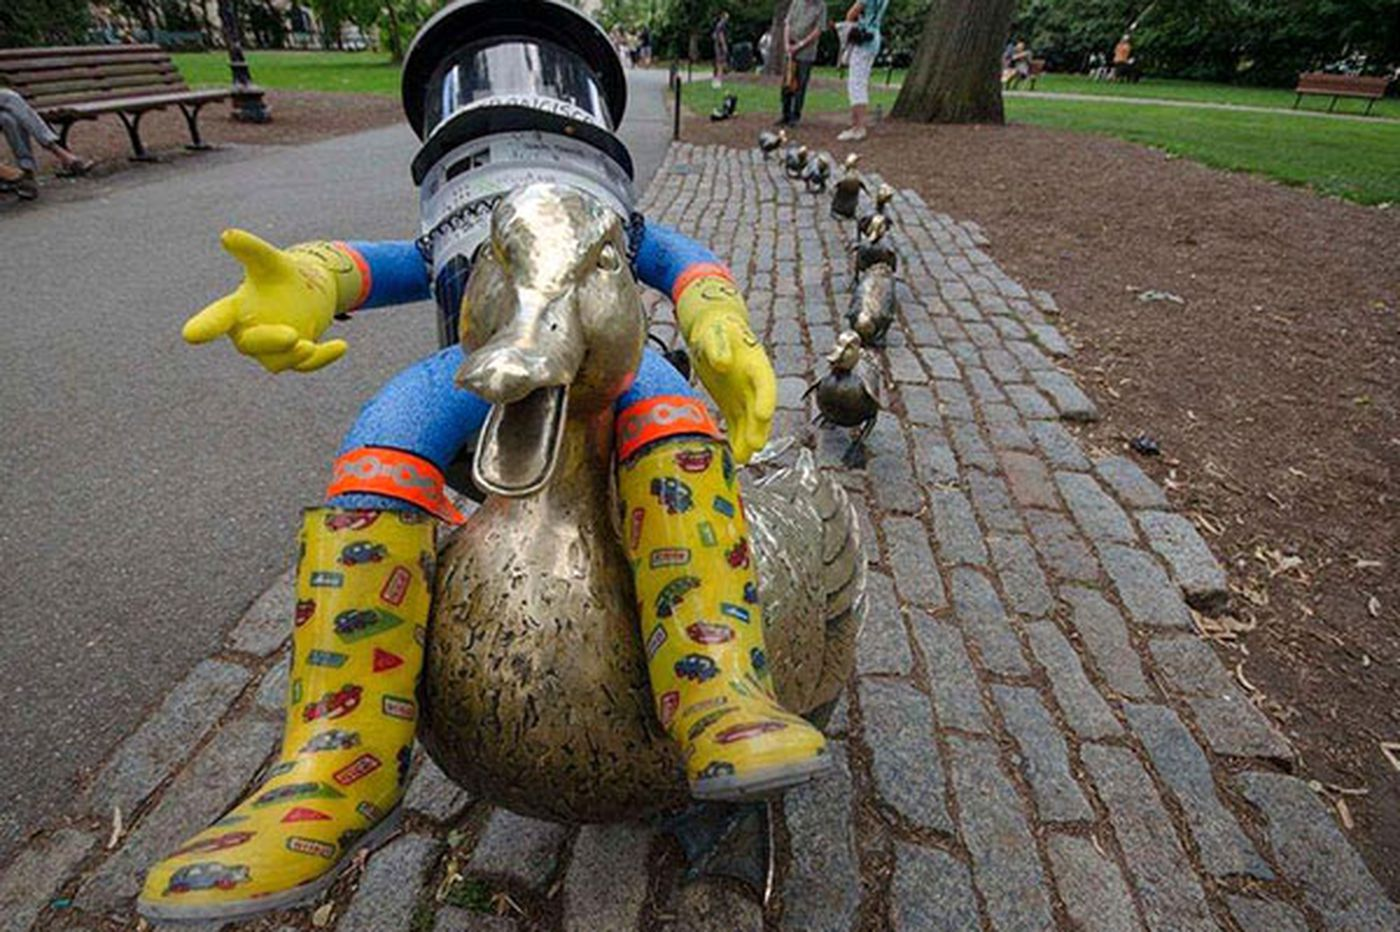 'Jeopardy!' brings up painful memories for Philadelphia with hitchBOT question